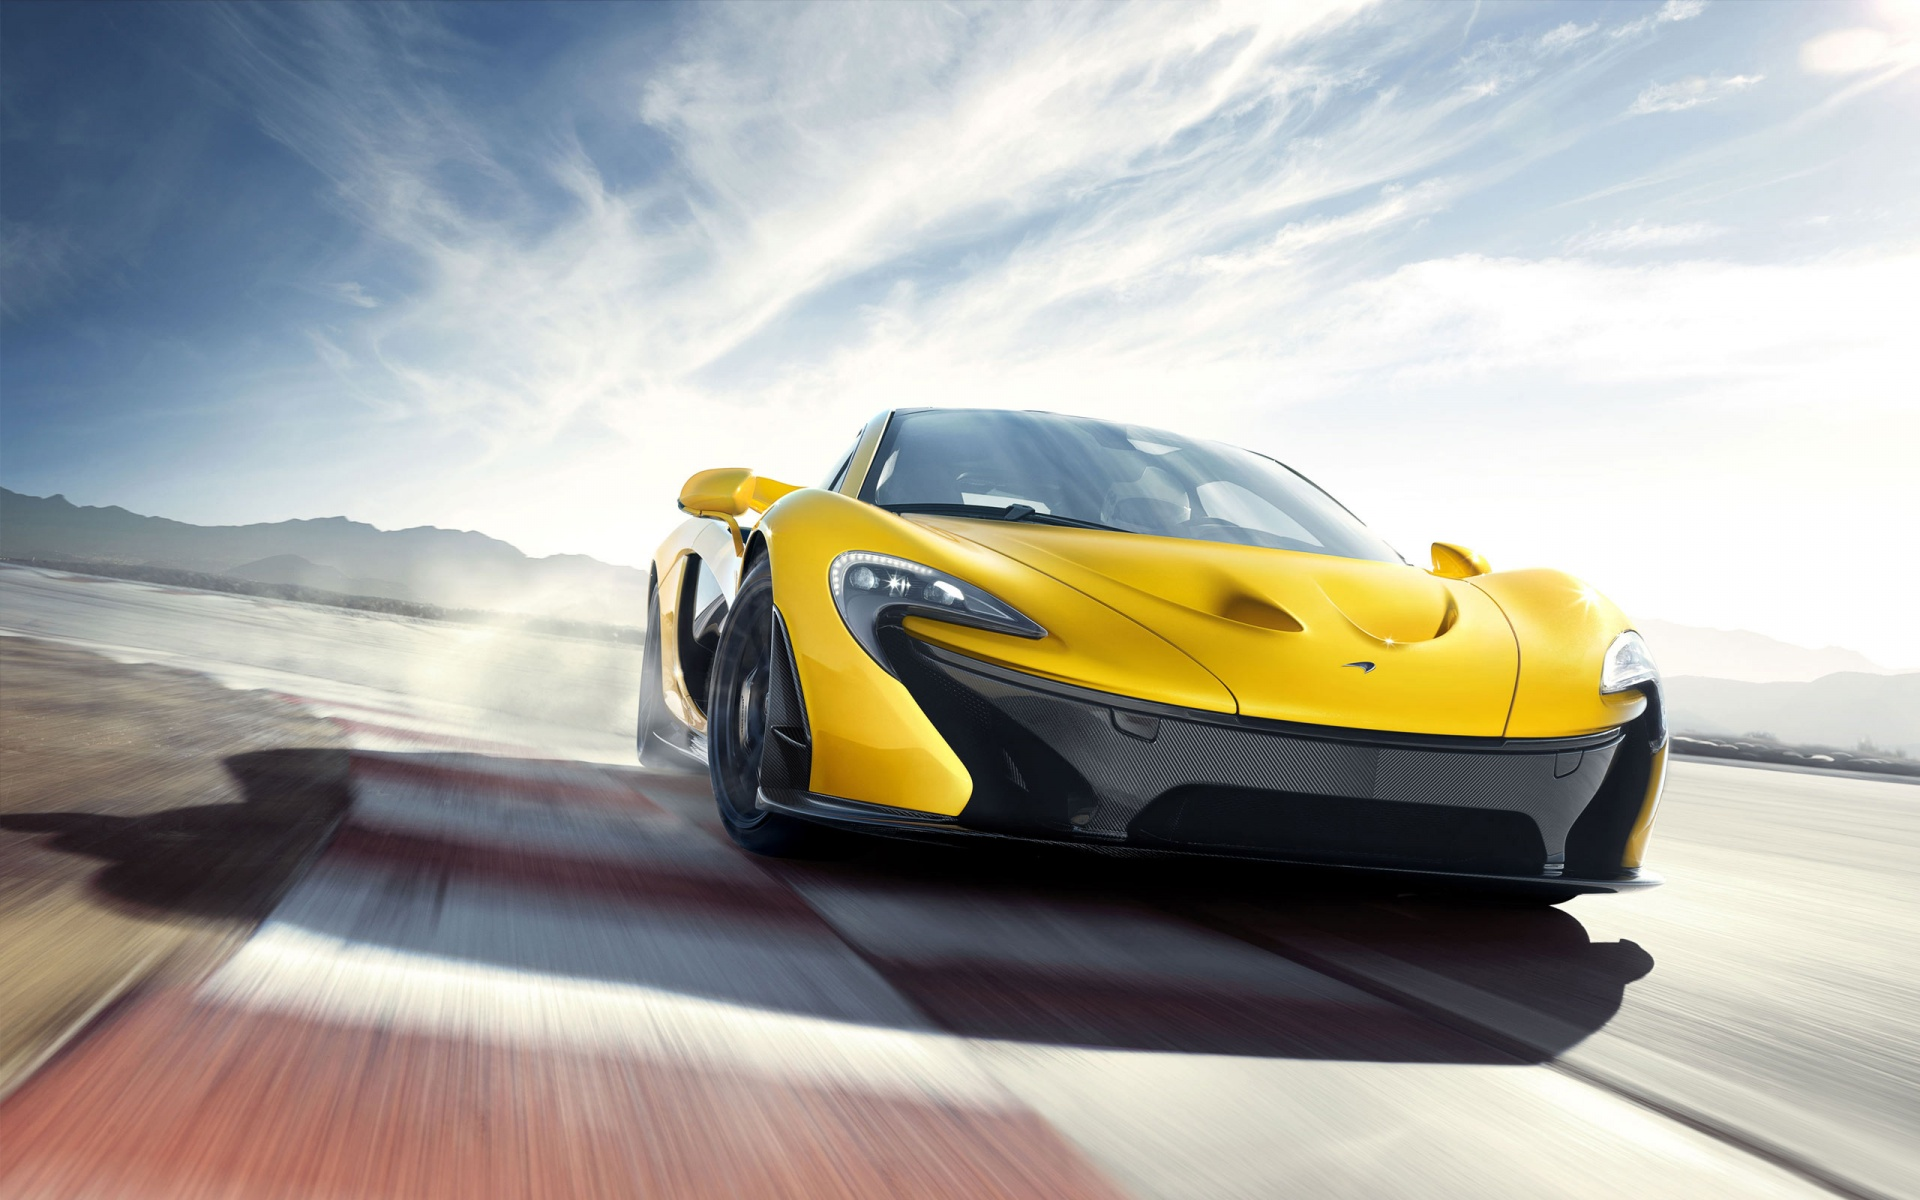 Mclaren Hd Wallpapers Free Download